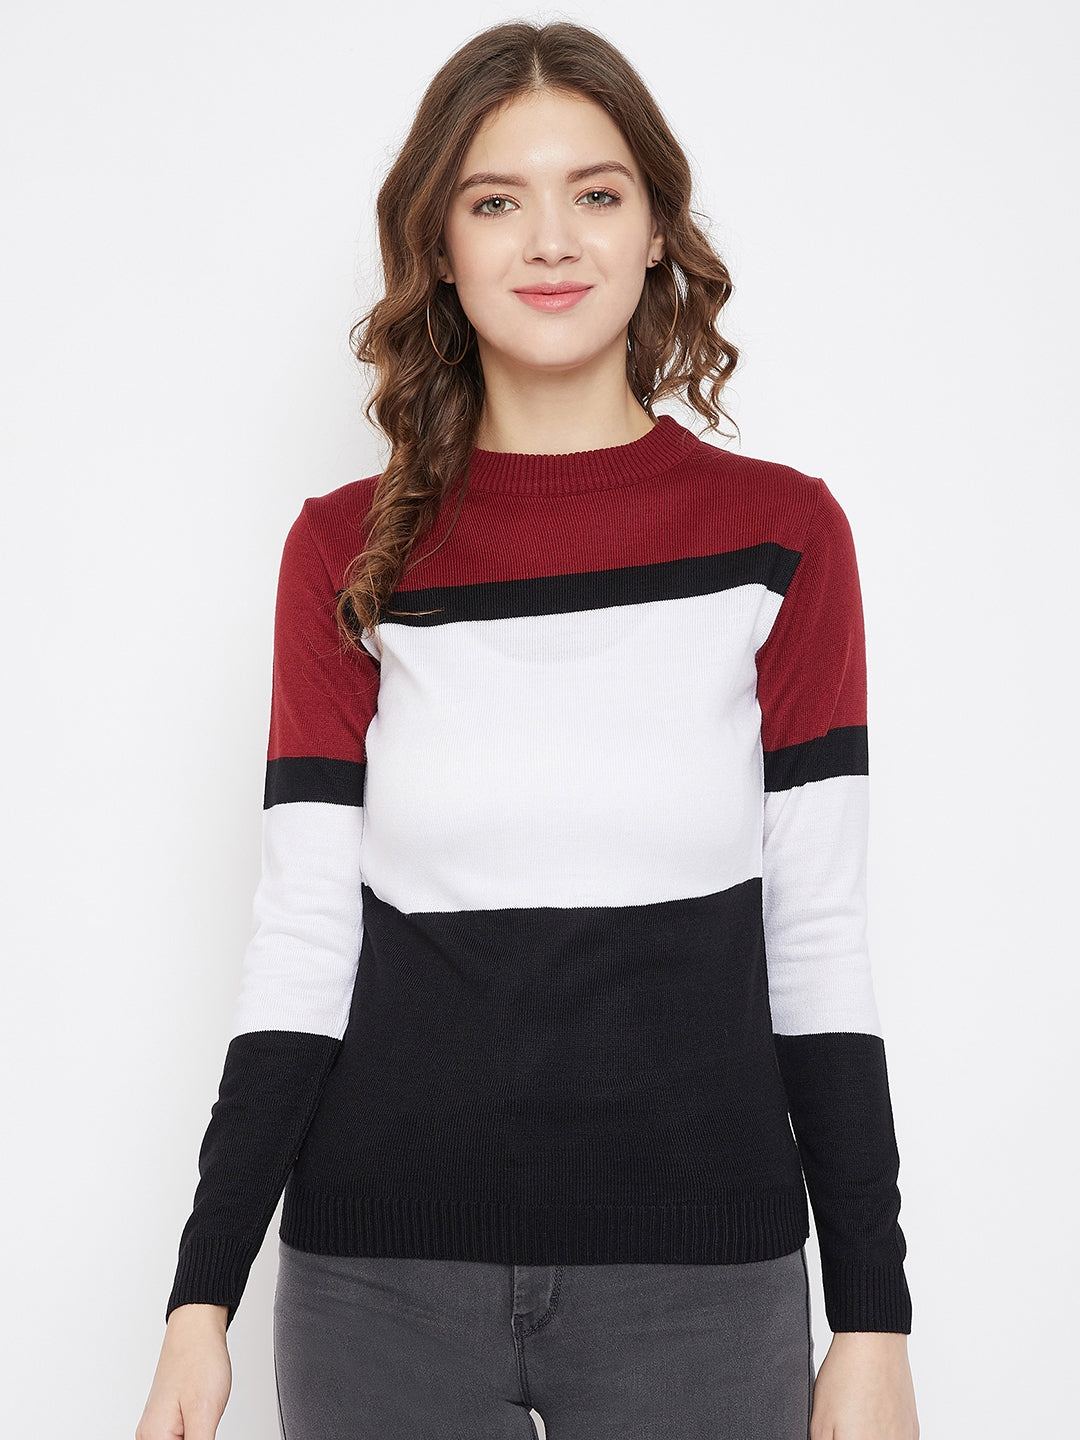 JUMP USA Women Black & White Colourblocked Pullover Sweater